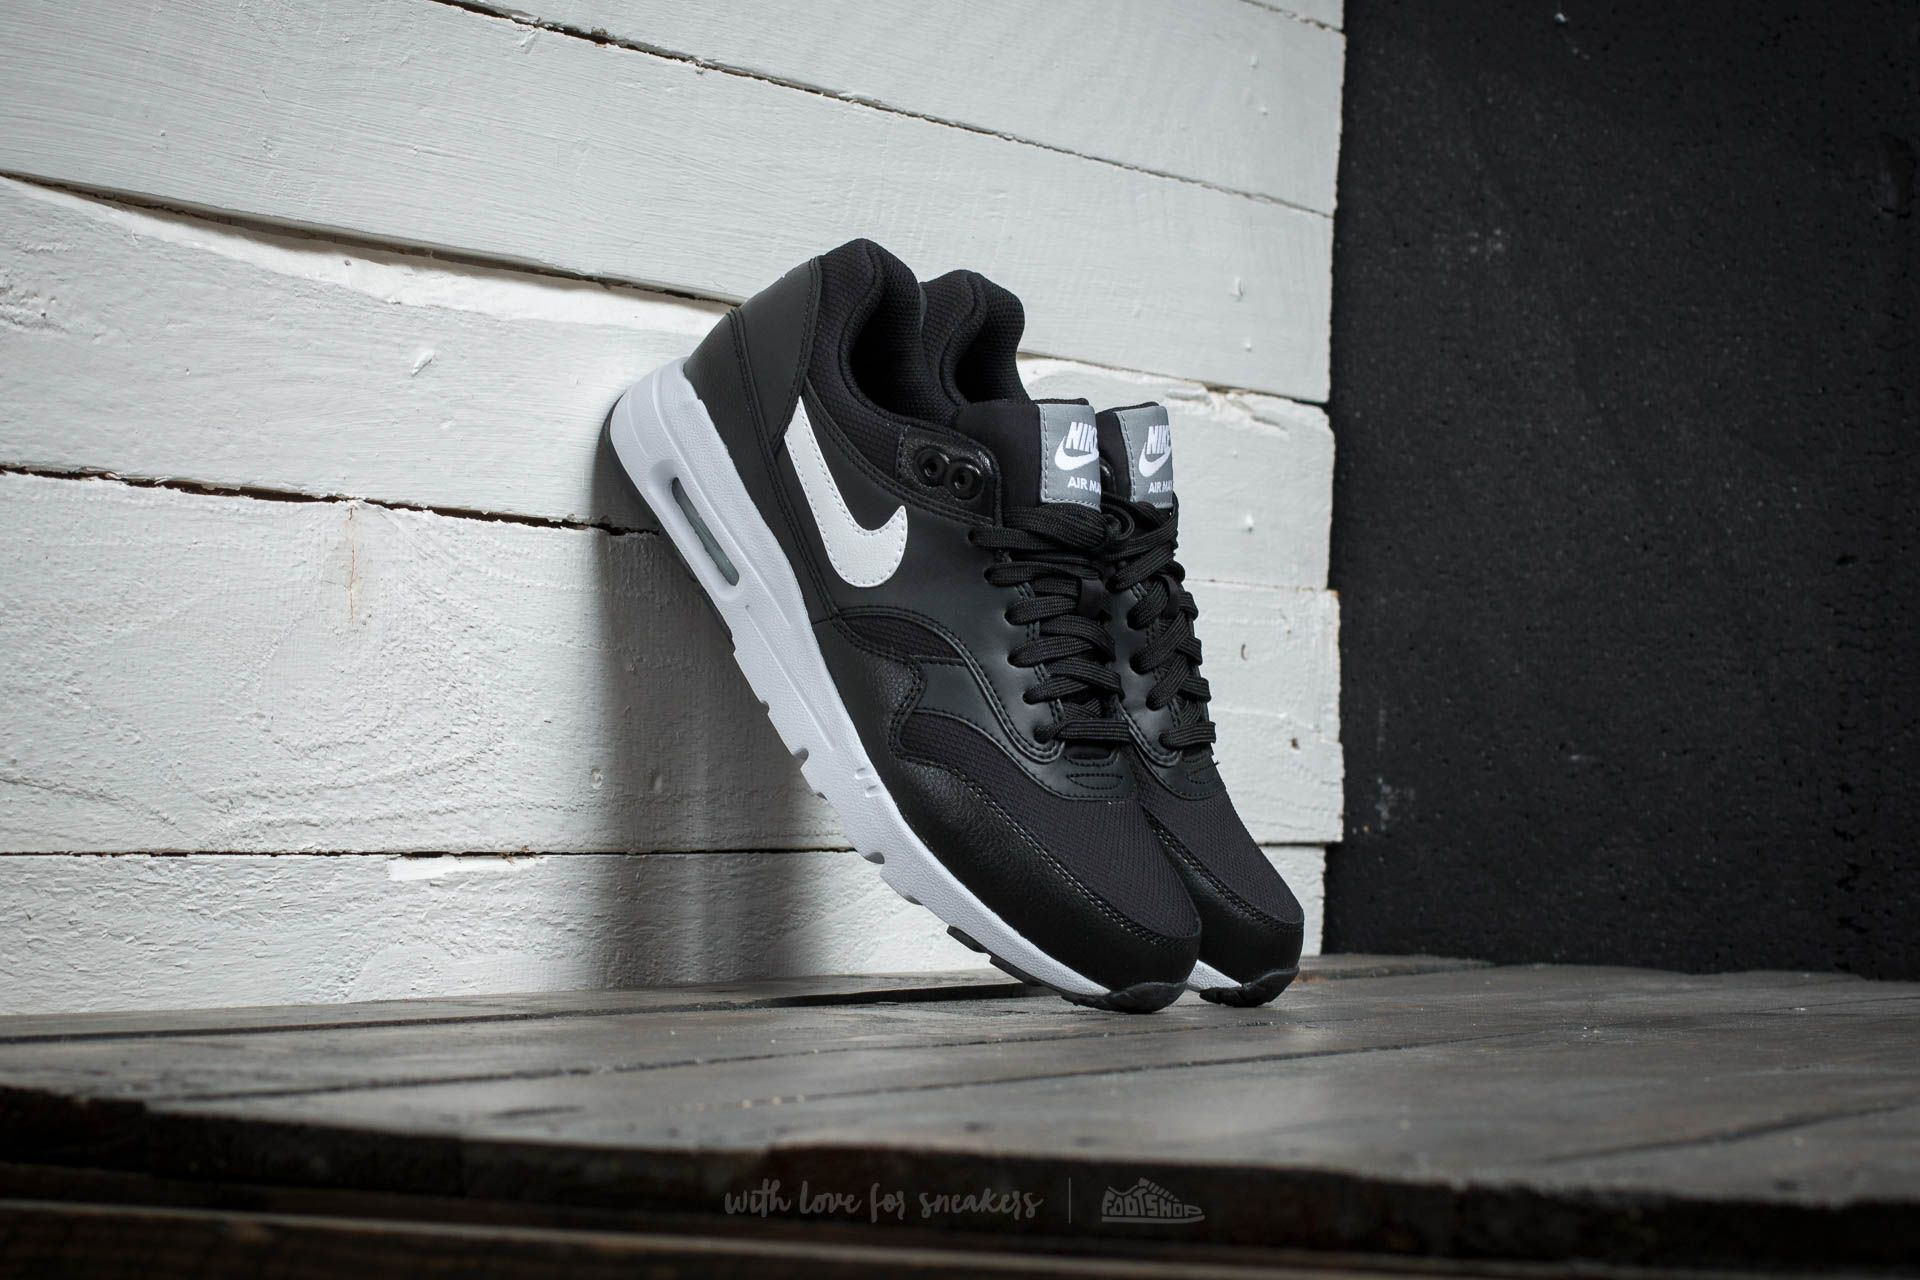 Nike W Air Max 1 Ultra Essentials Black/ White- Steal Th- Pure Platinum